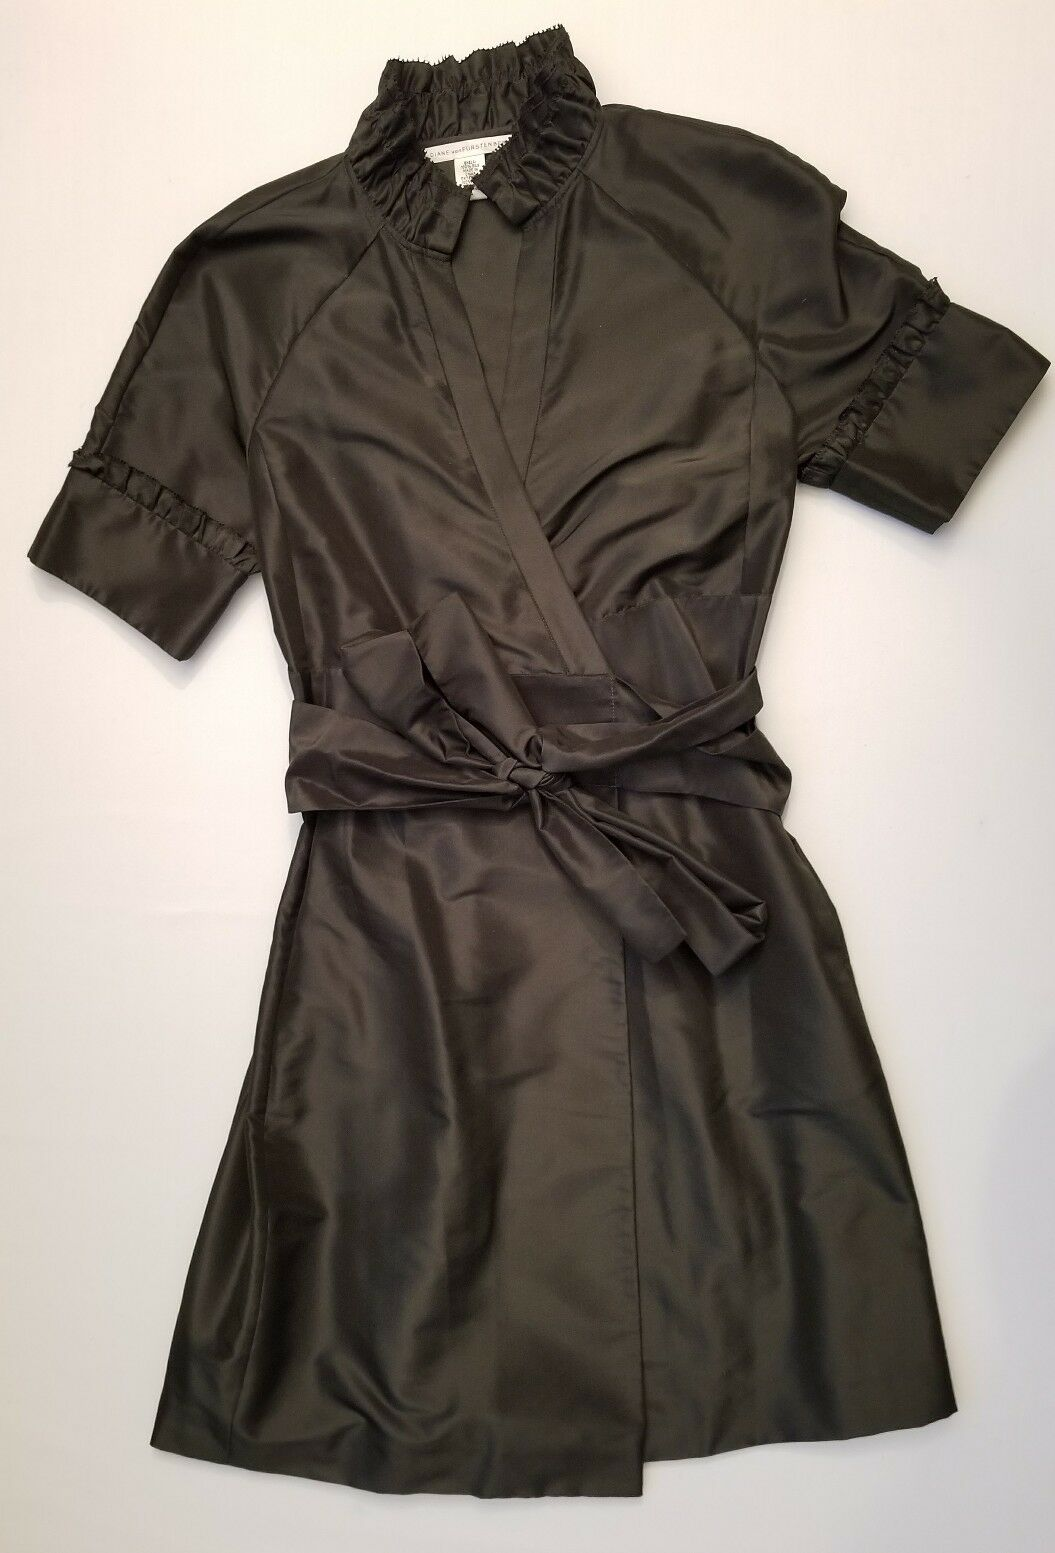 Dian Von Furstenberg Miss Cherie Silk Wrap Dress Forest Grün Stiff Faille Sz 4